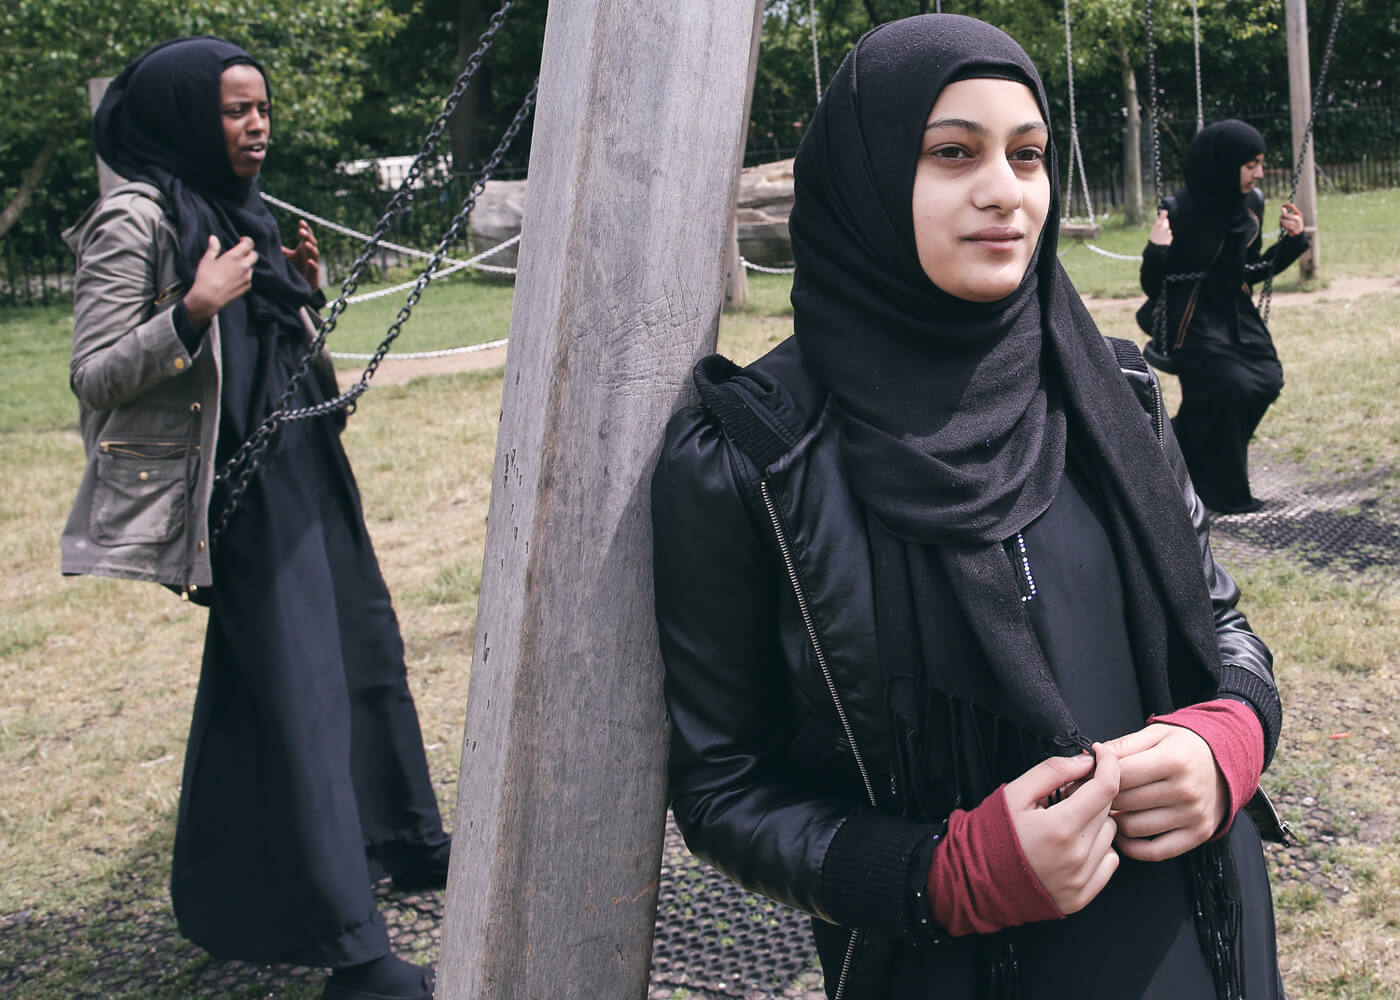 Hana, 16, celebrates in the park after finishing her last GCSE. She started wearing her headscarf full-time aged 12. She was already wearing it everyday for school so it was easy for her to make the decision.